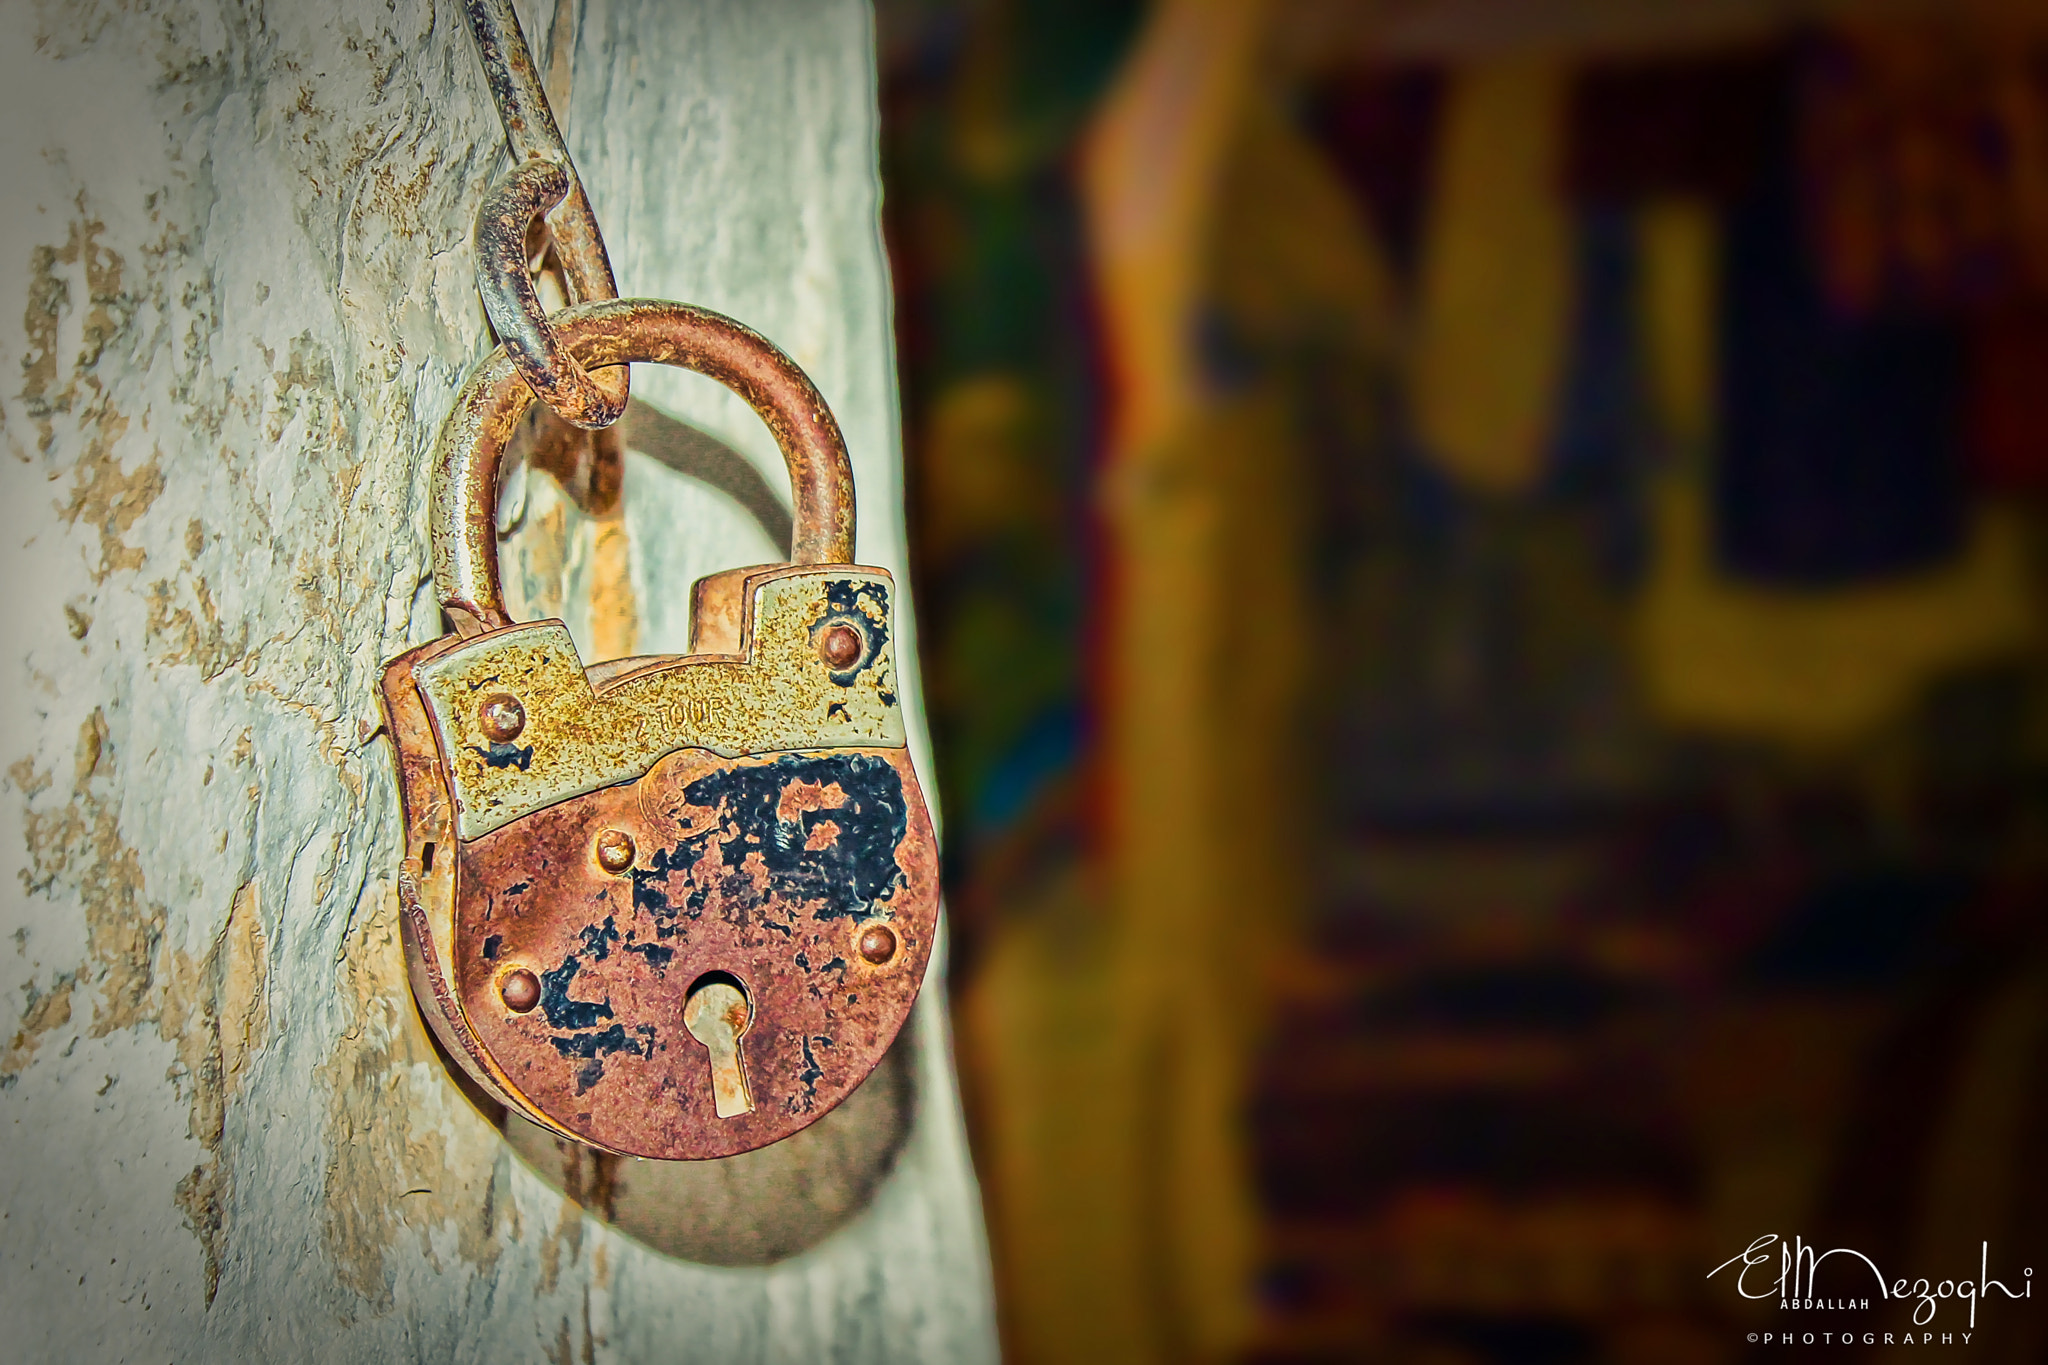 Photograph Old Lock by AbdallaH ElmezOghi on 500px